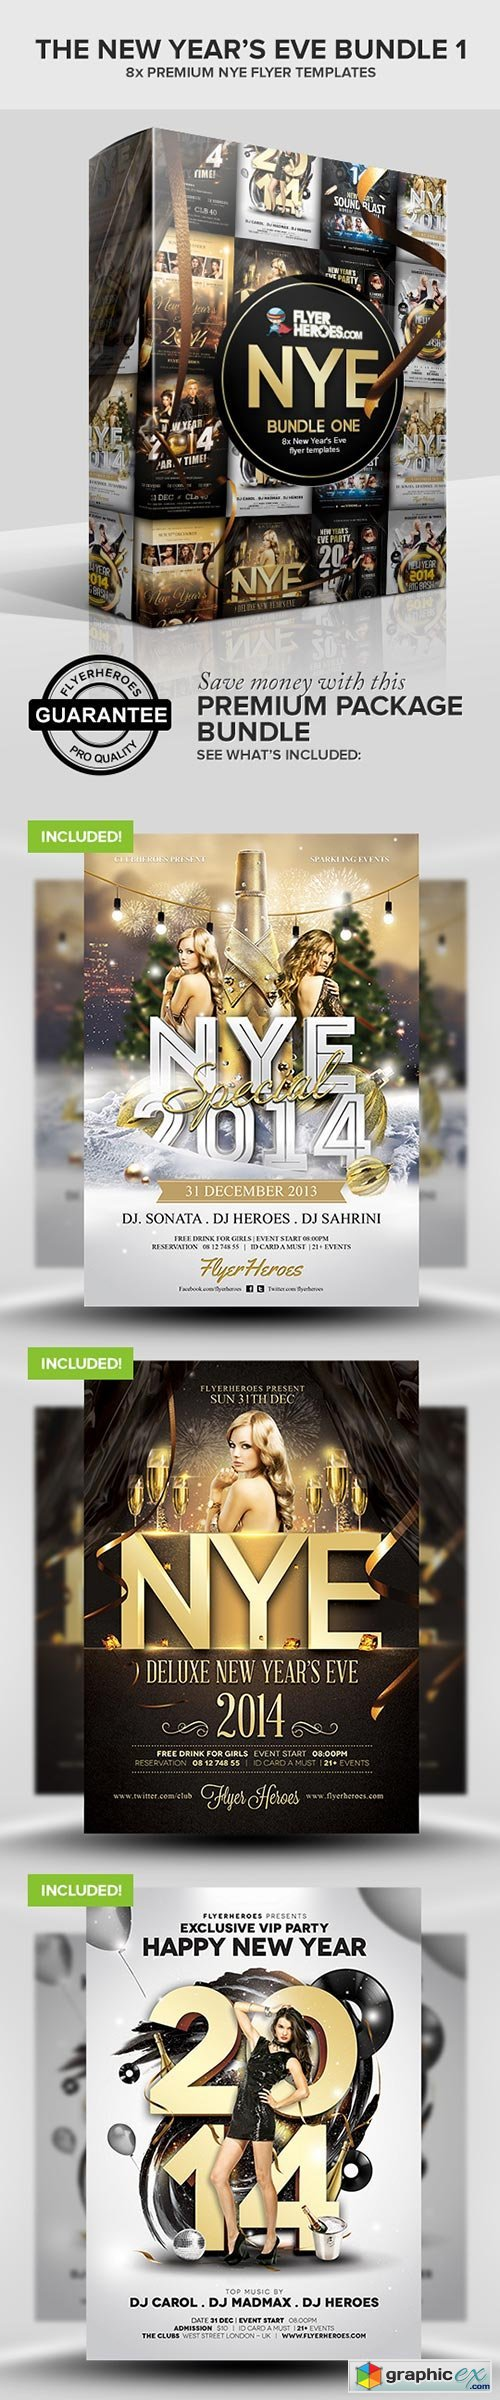 The New Year�s Eve Bundle 1